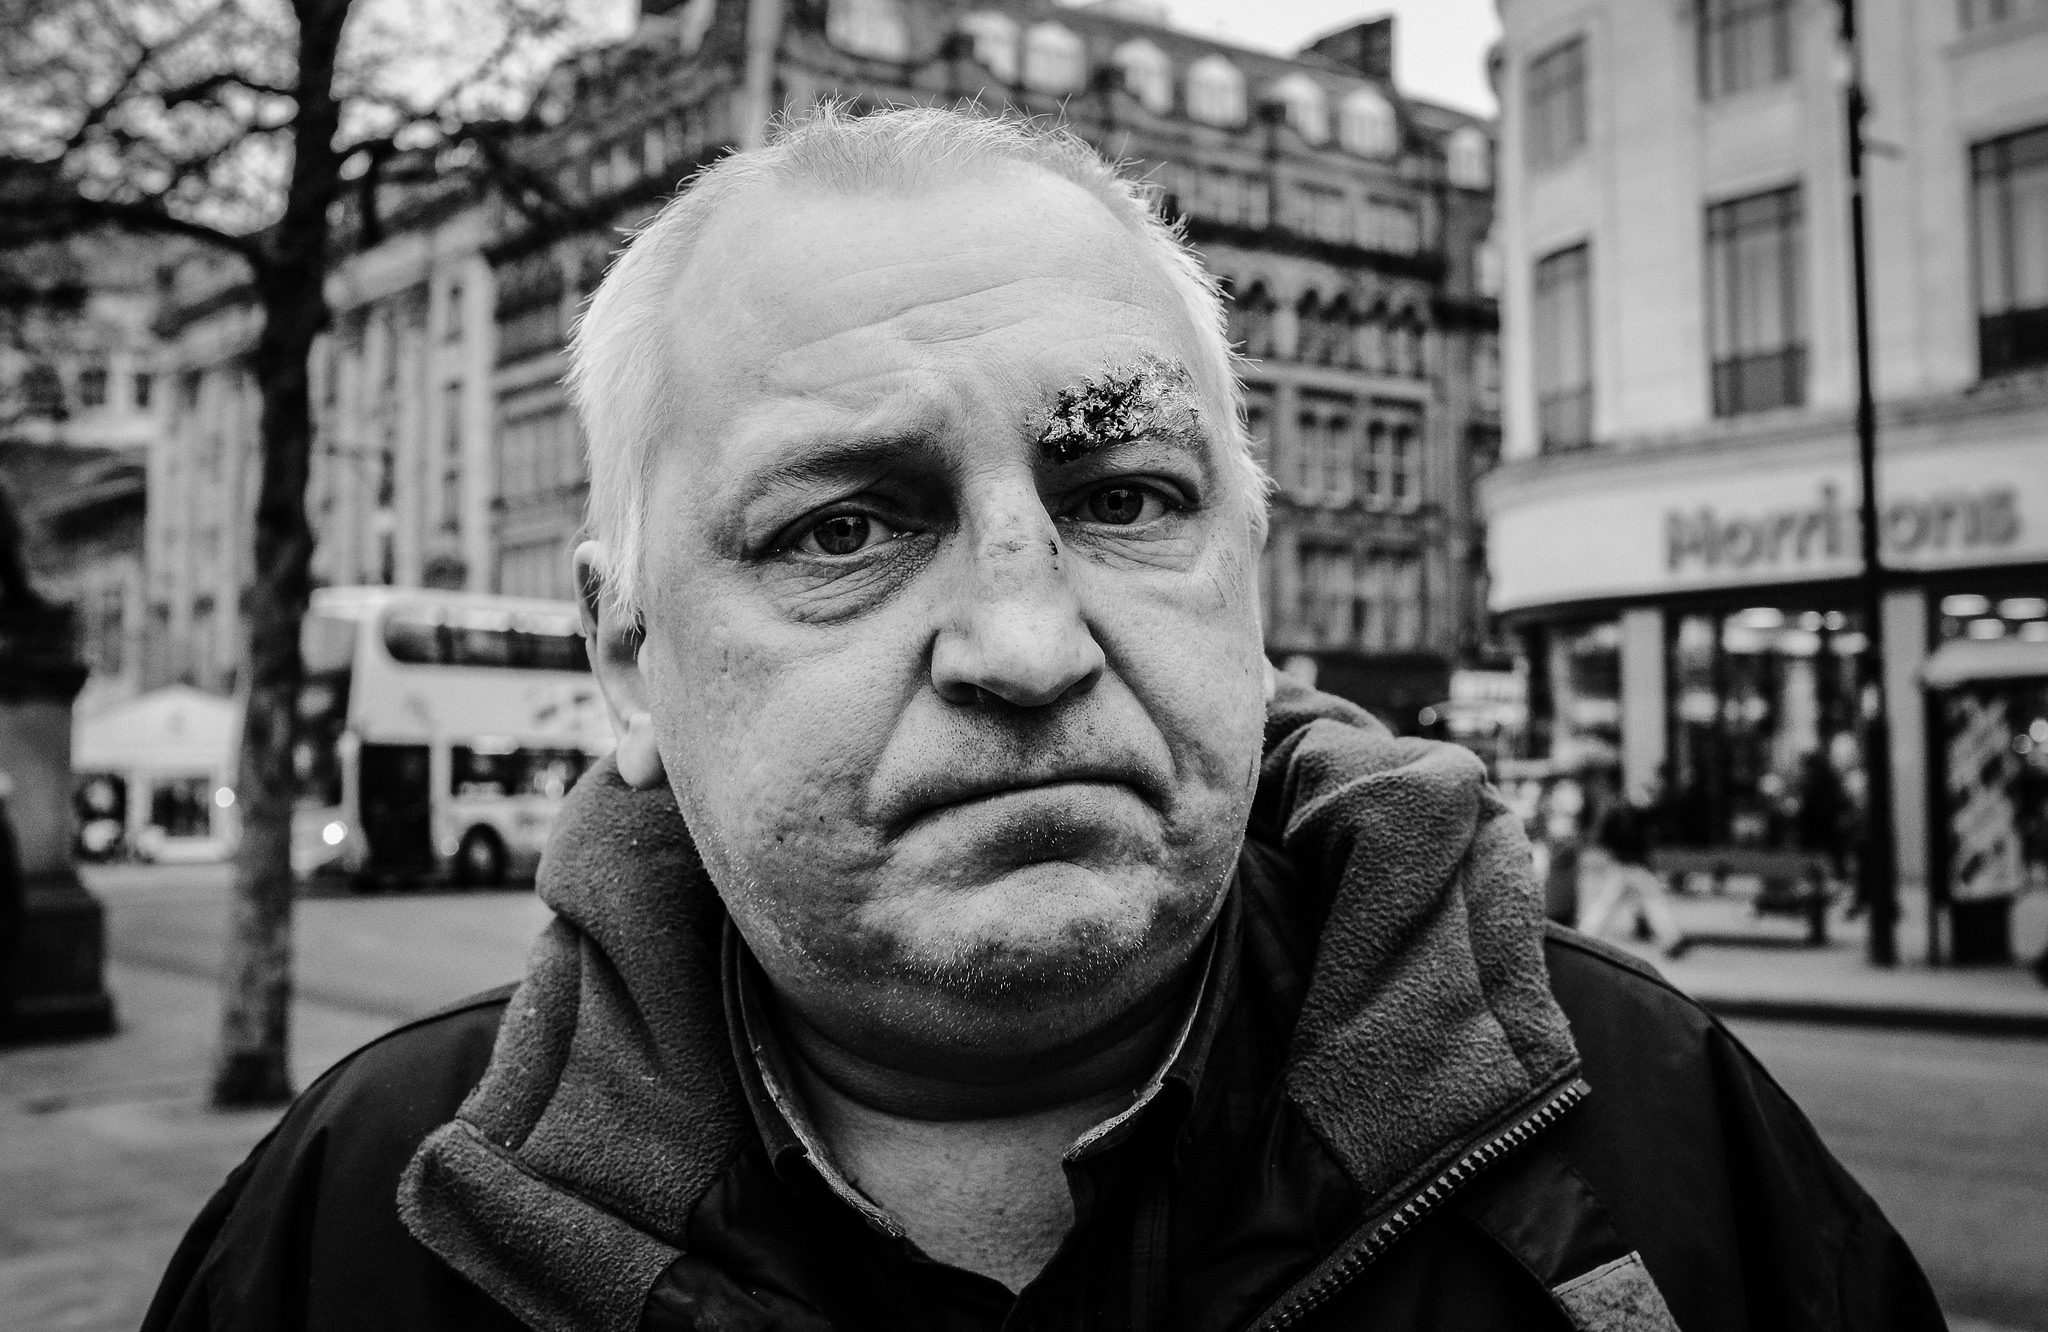 Image: keithvaughton, Faces of Manchester,  Flickr